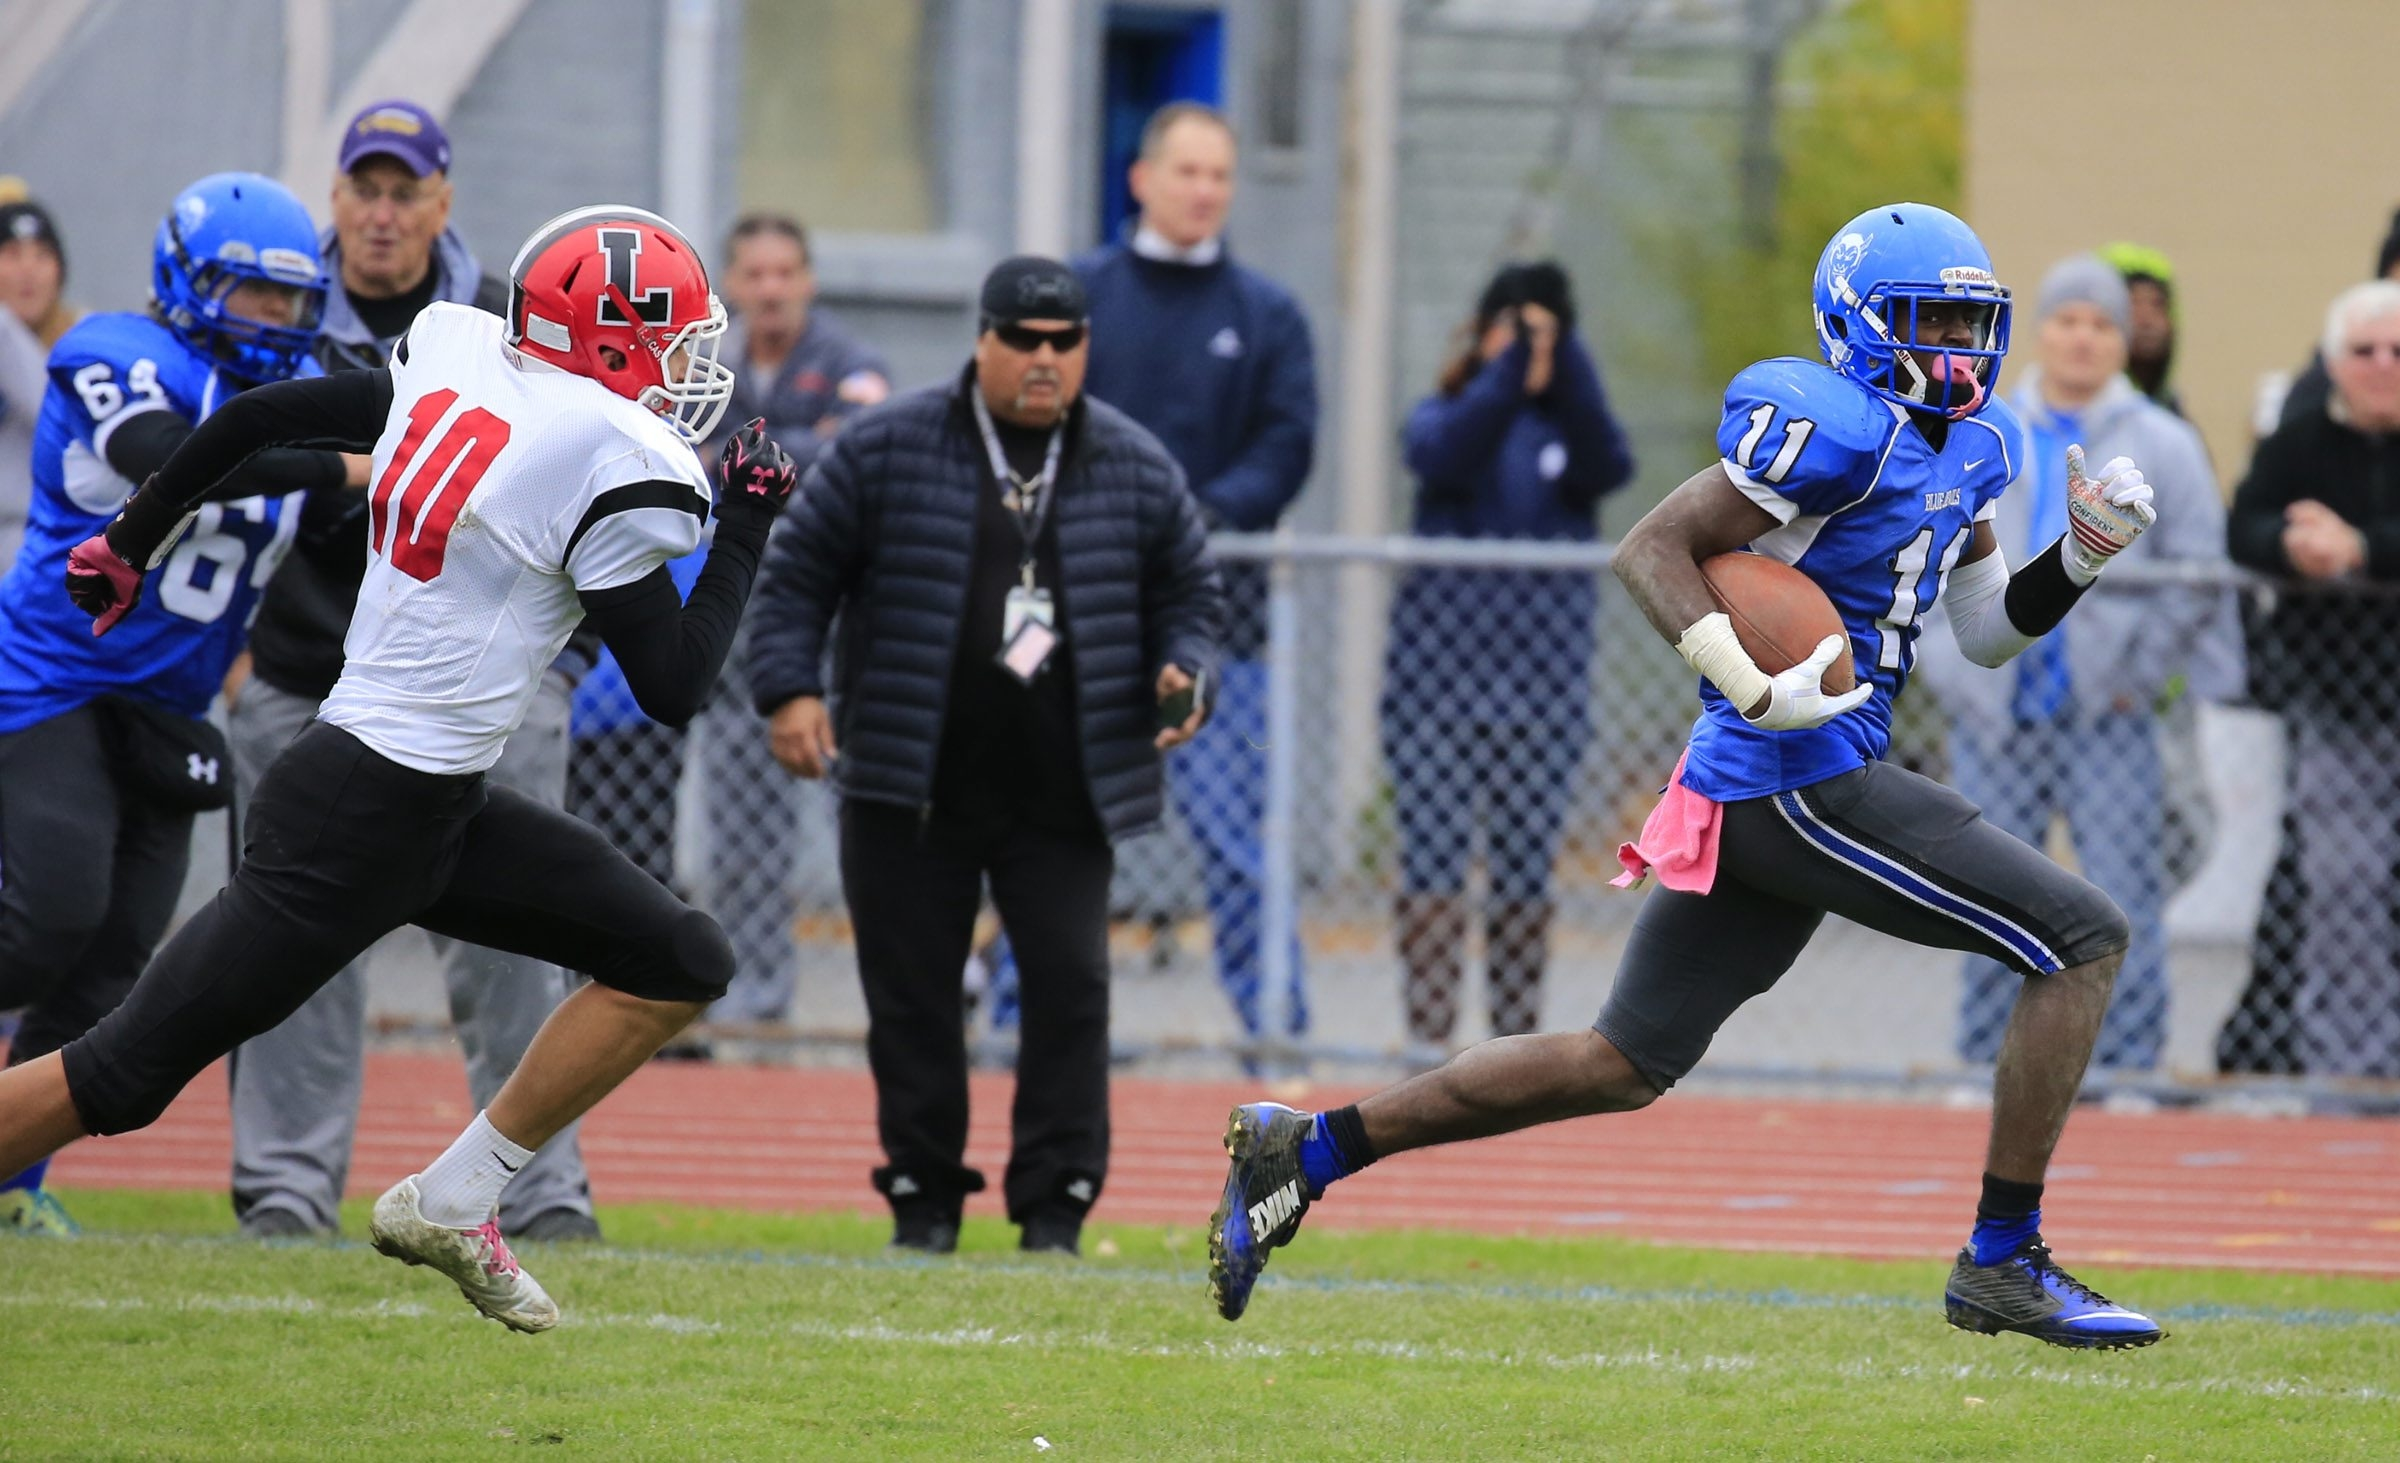 Kenmore West's Terrell Ford runs for one of his four touchdowns against Lancaster on Saturday at Crosby Field.